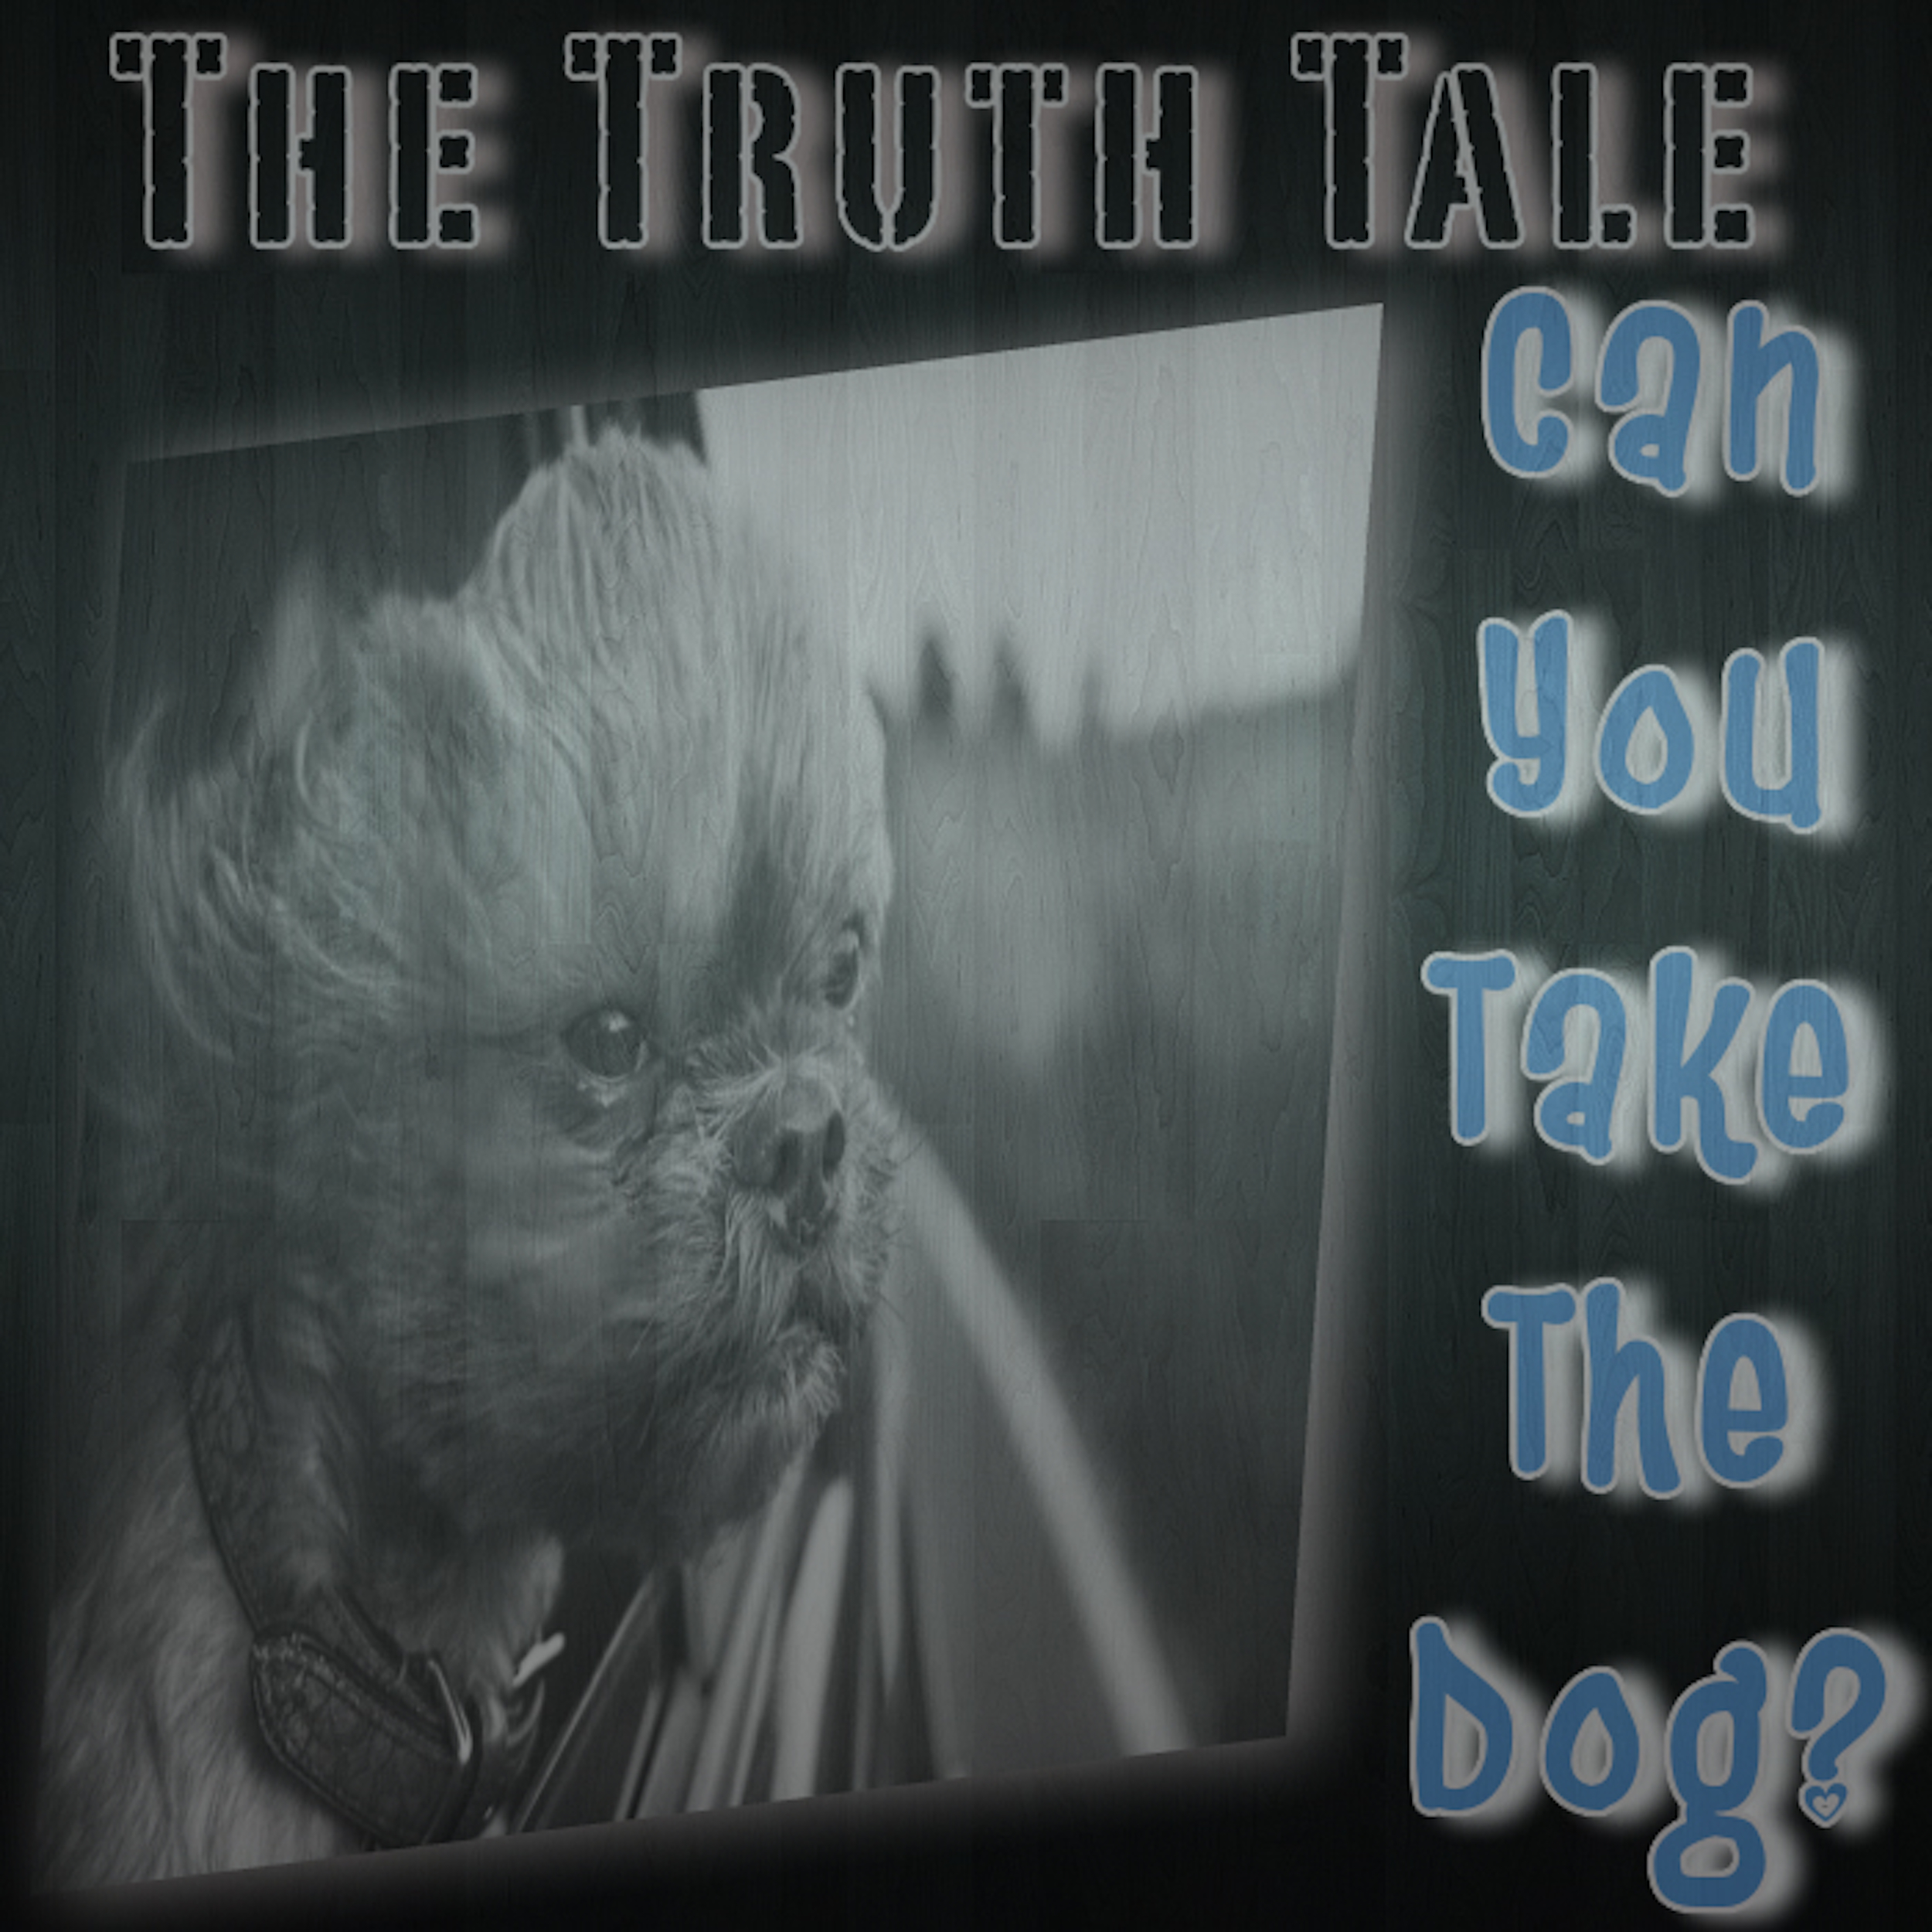 Can You Take The Dog?